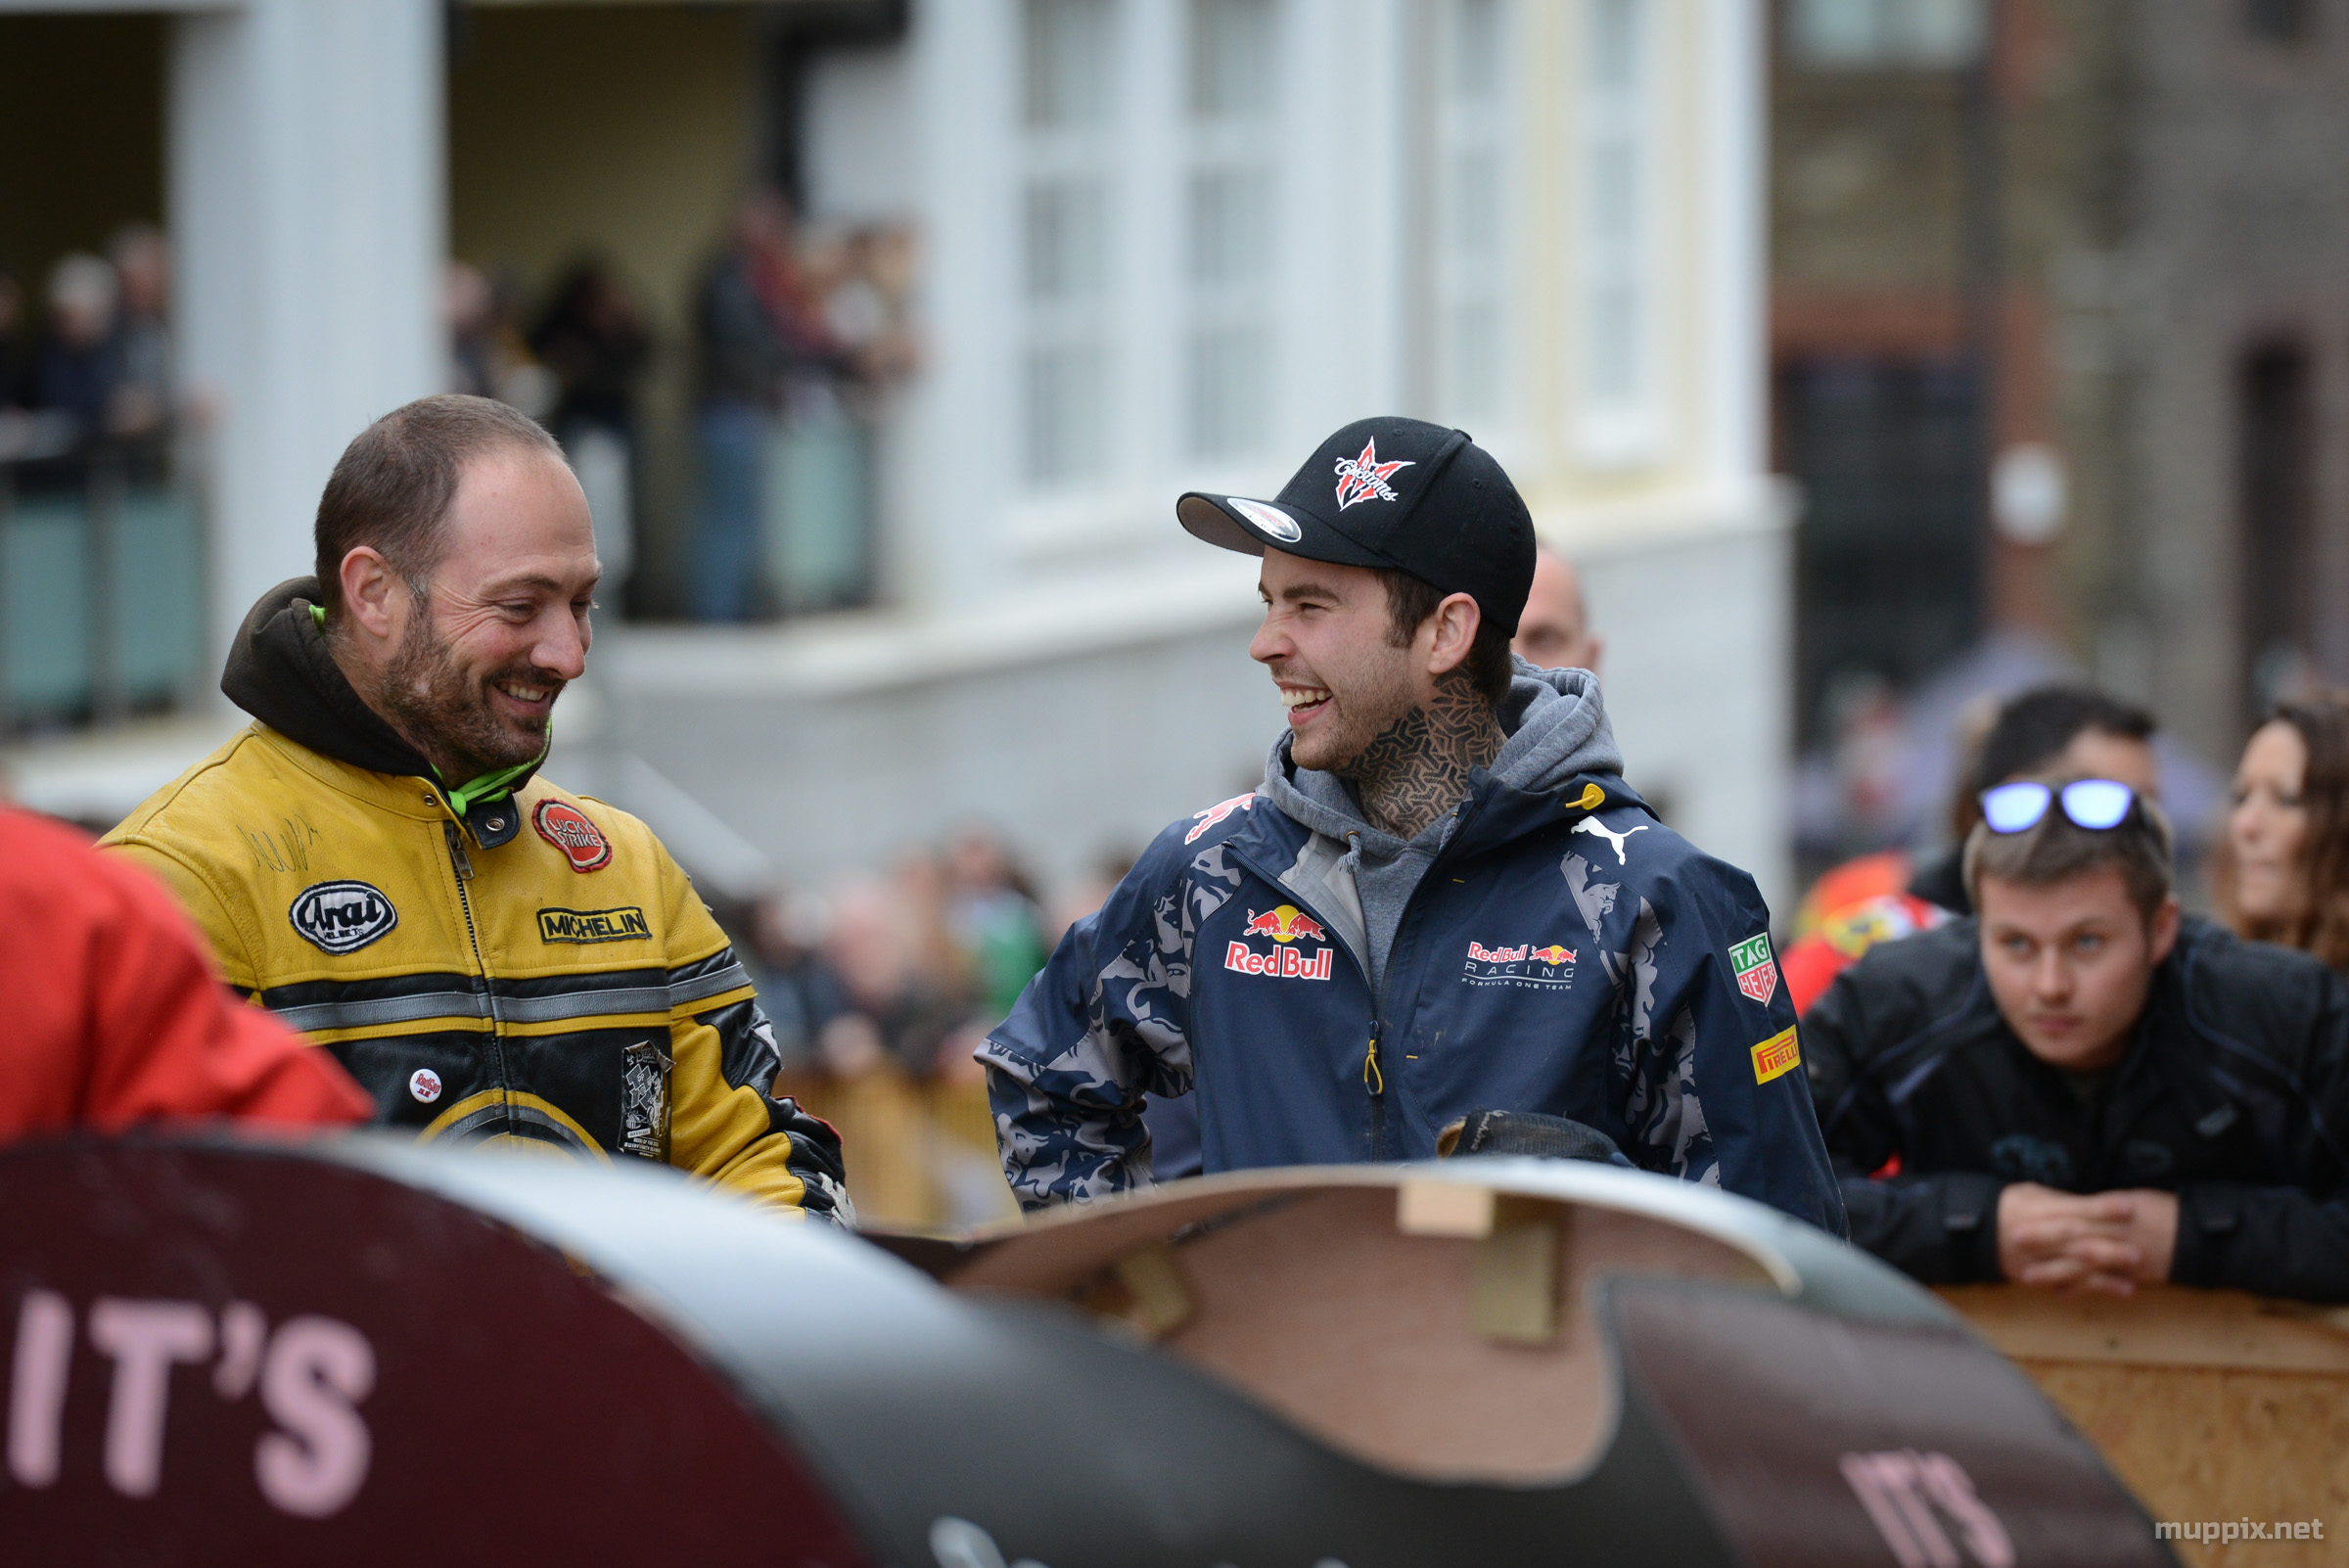 Long shot of two soapbox competitors having a conversation while waiting to start.